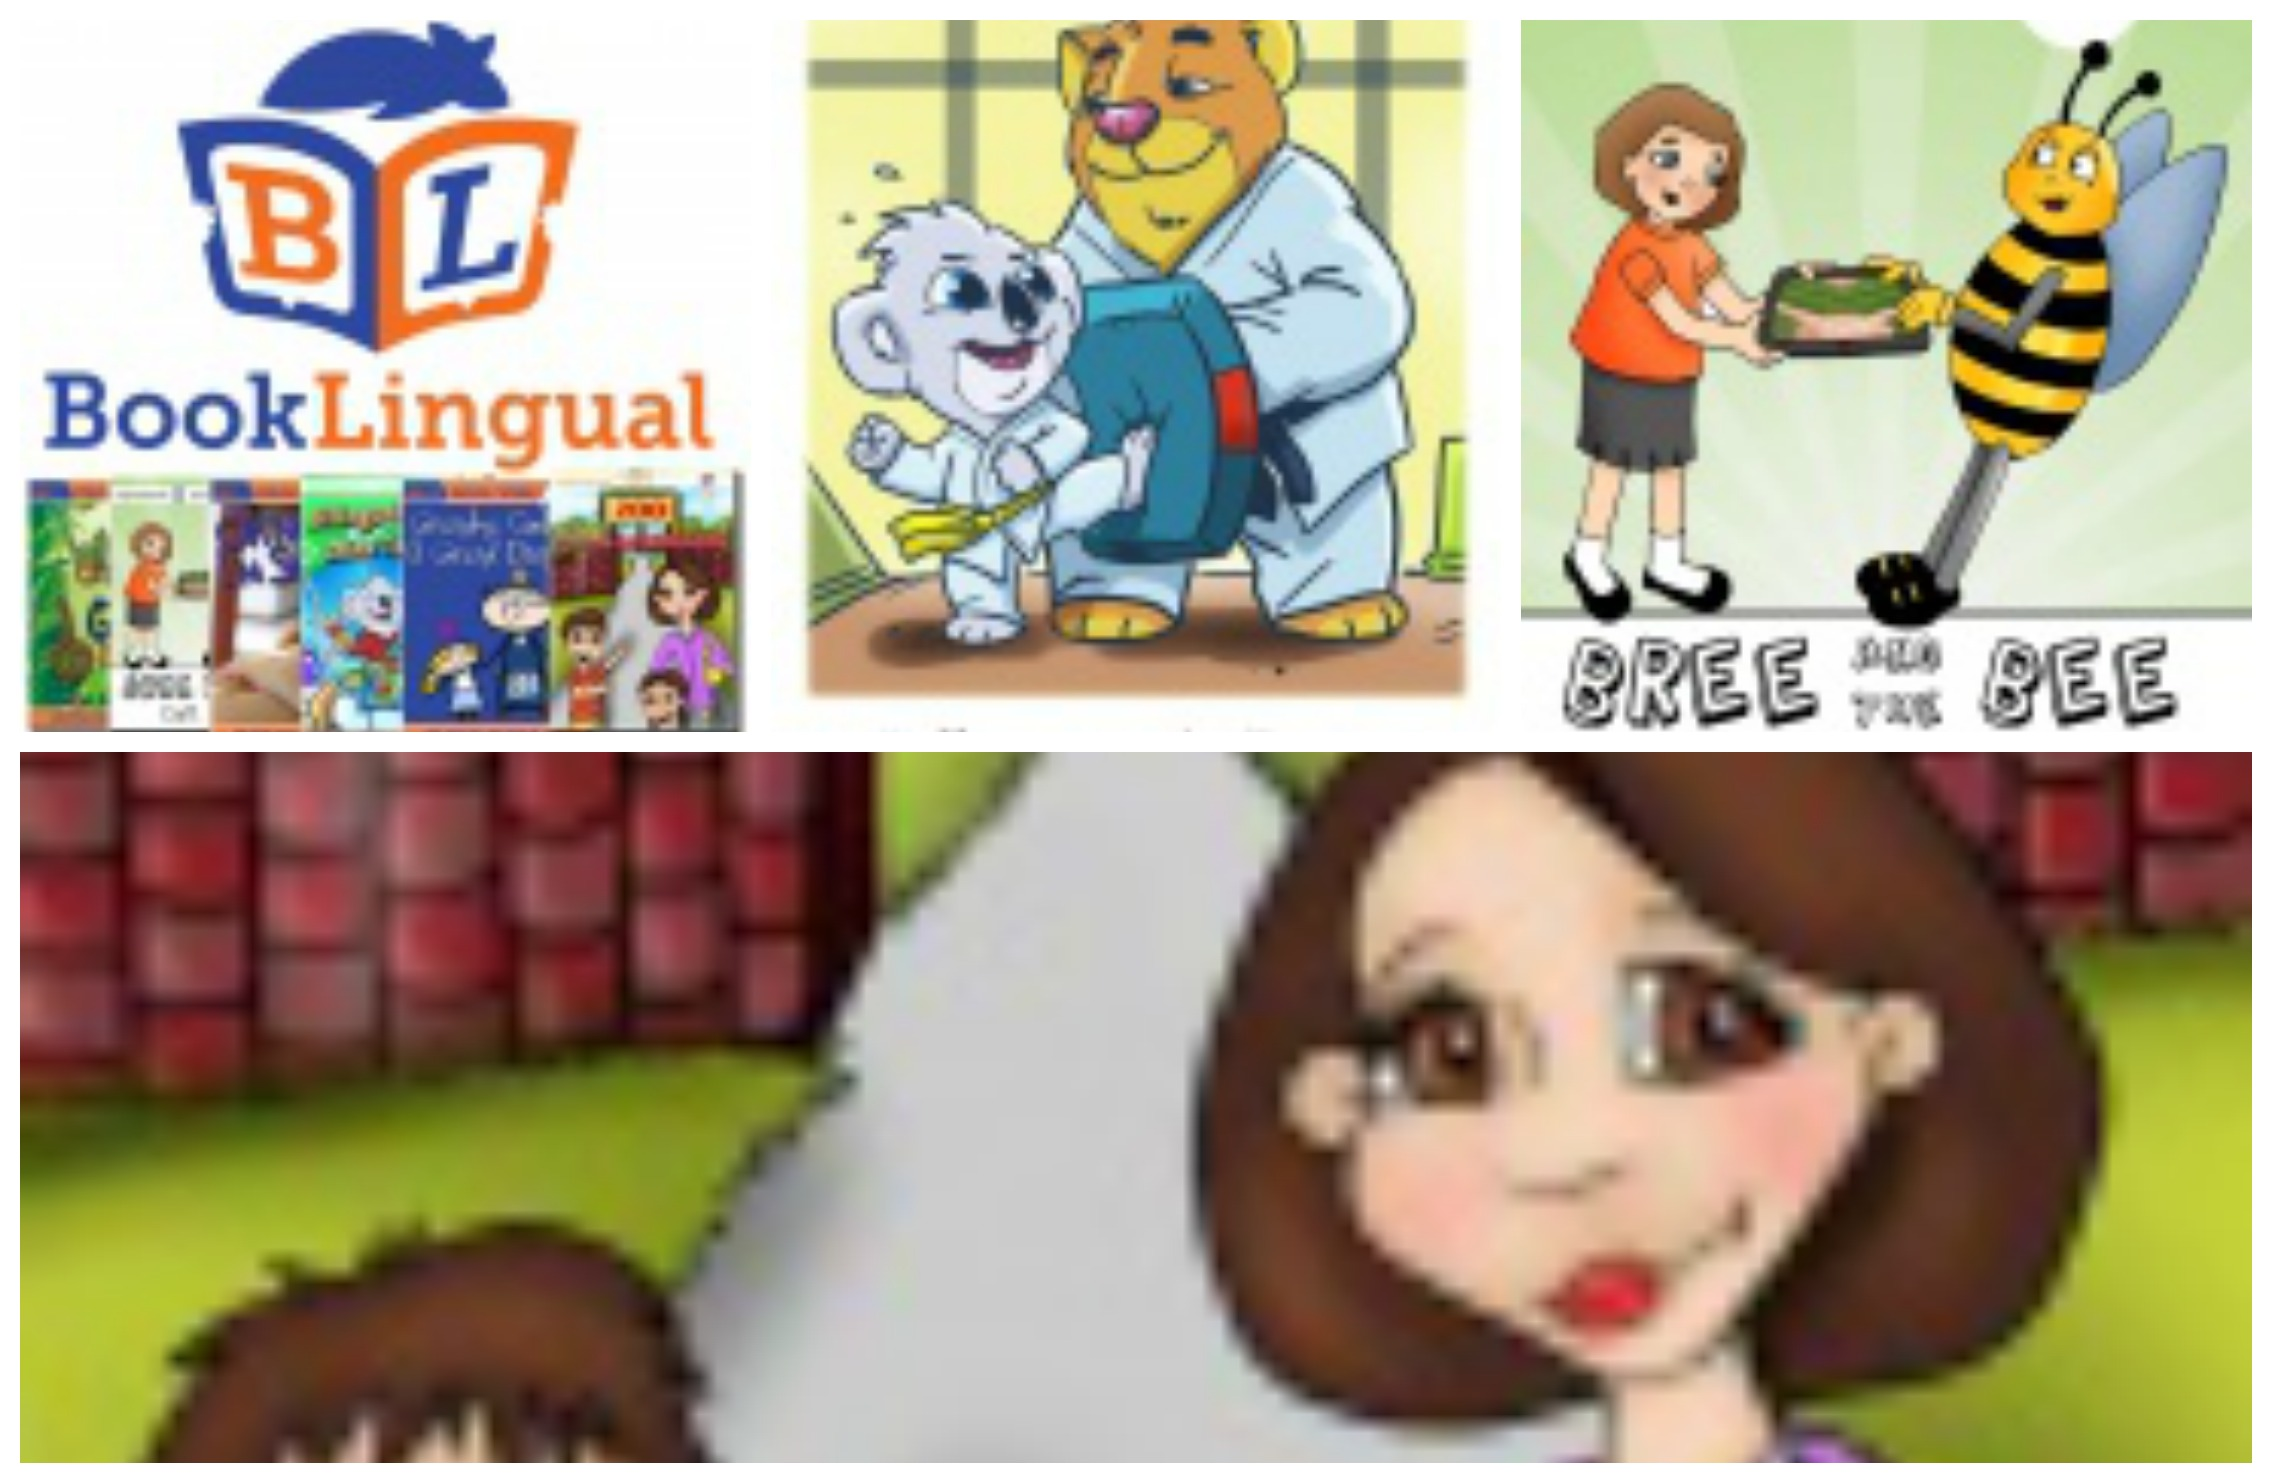 Booklingual 6 spanish ebooks review booklingual comes in spanish and is in ebook format for easy reading on your ipod touch ipad smart phone or other android device fandeluxe Gallery